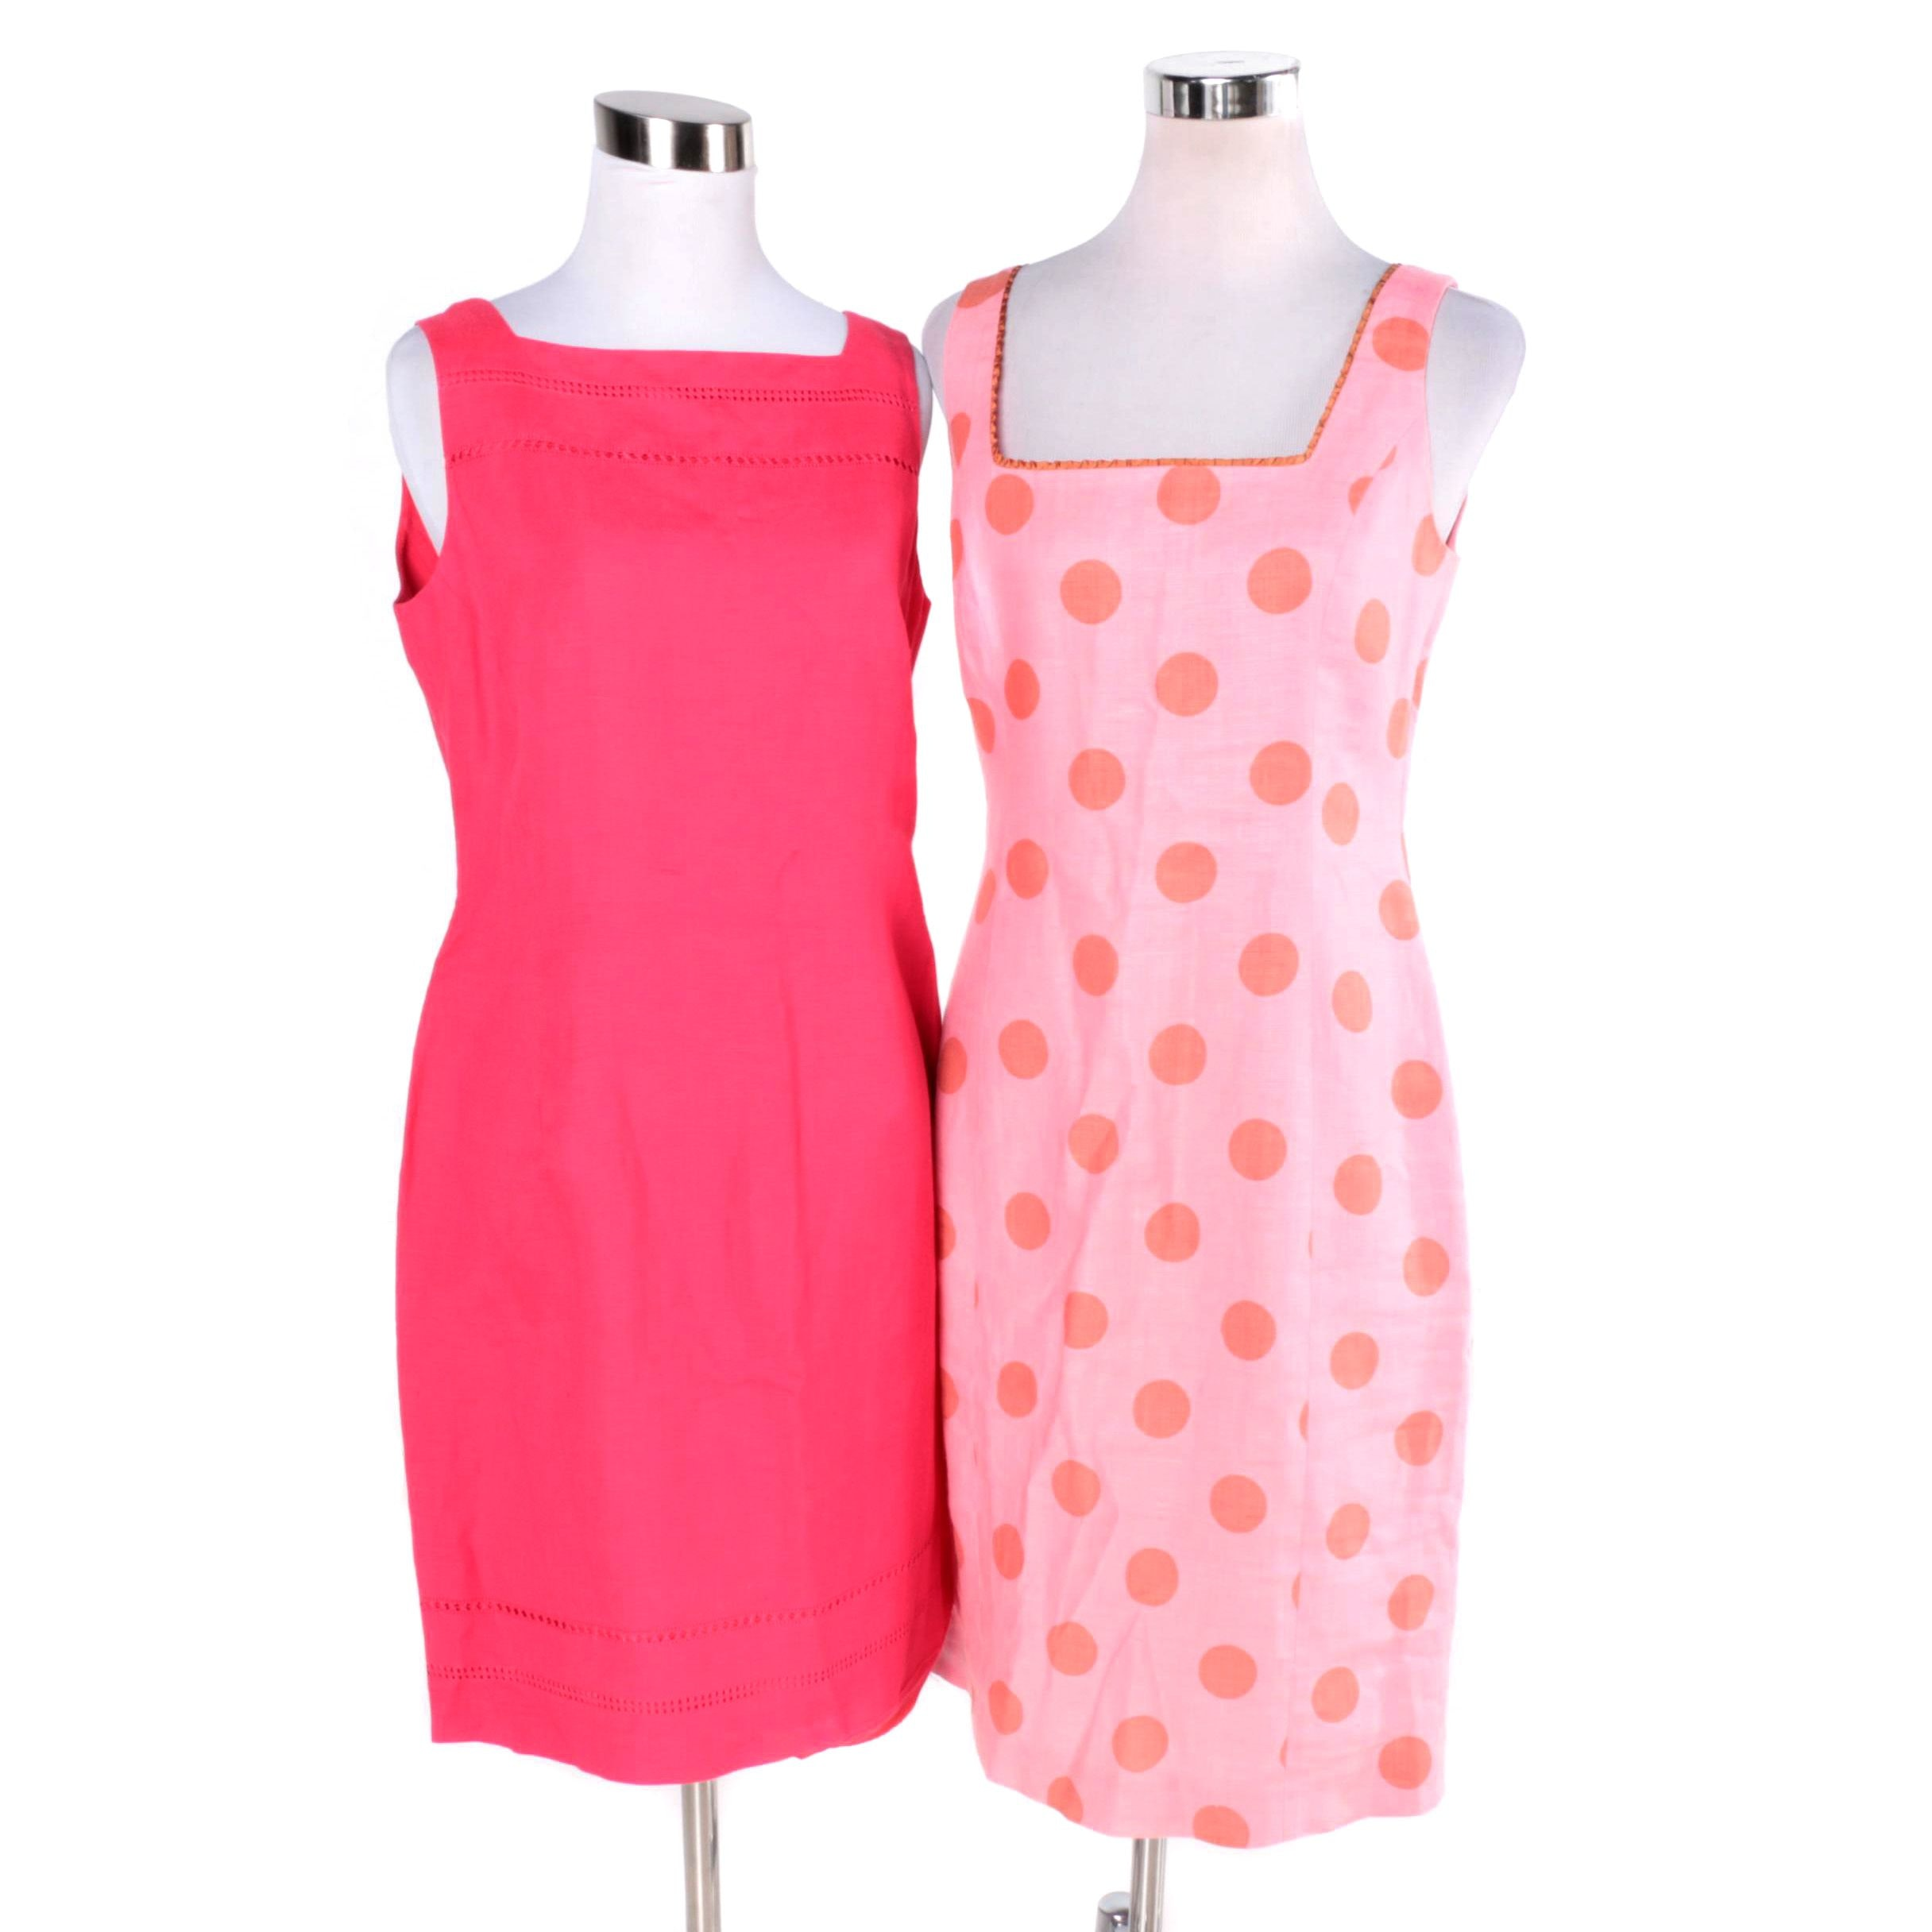 Women's Pink Dresses Featuring Jones New York and Quadrille